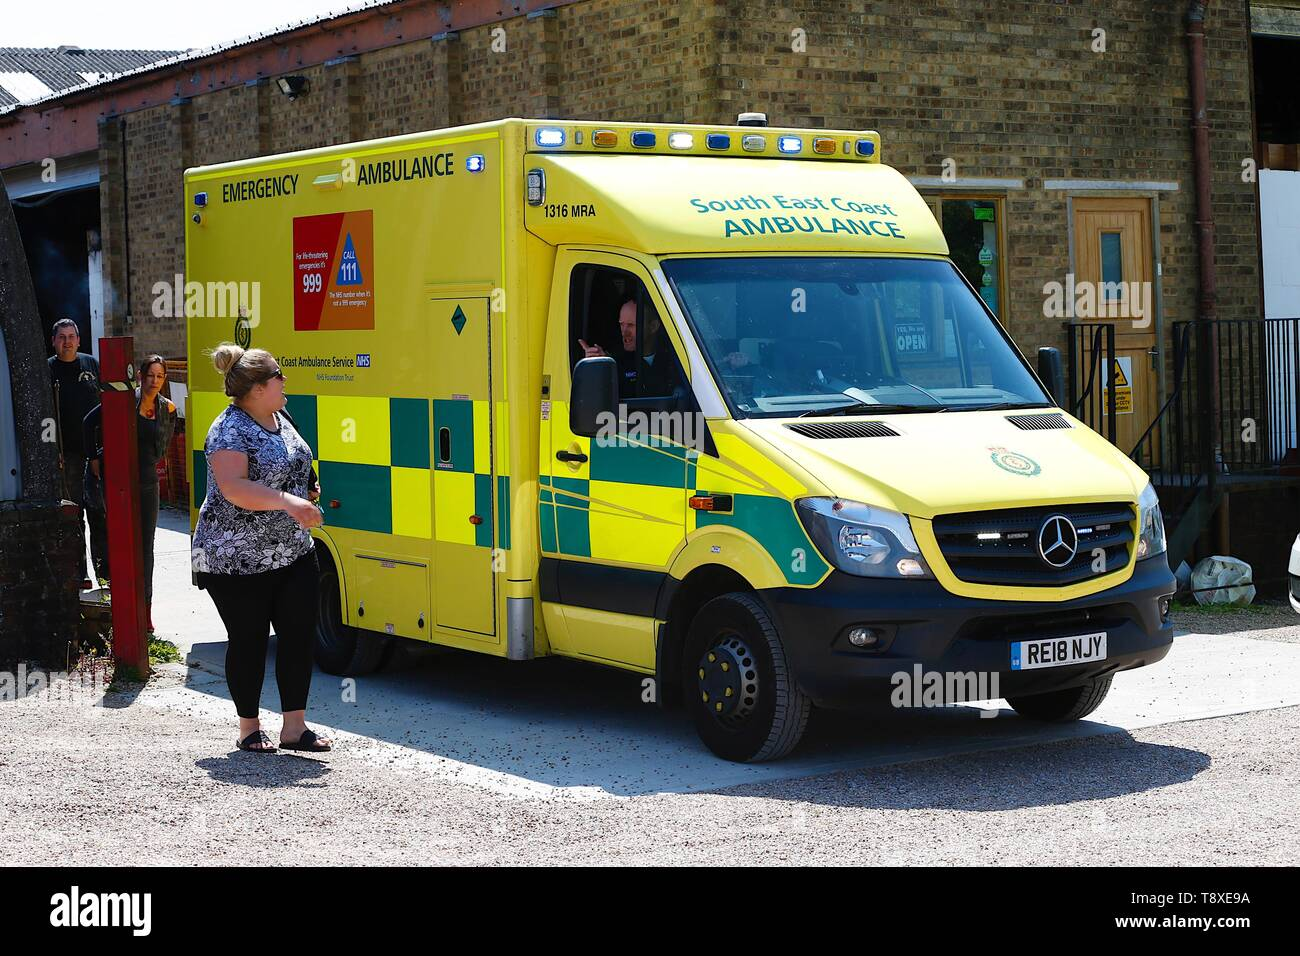 Tenterden, Kent, UK. 15th May, 2019. A Kent Surrey Sussex air ambulance as been dispatched to an incident in the town centre. Medical staff are at scene. The emergency has taken place at the Old Dairy Brewery in the town centre. The driver of a South East Coast ambulance talks to a relative at the scene of the accident. Credit: Paul Lawrenson 2019, Photo Credit: Paul Lawrenson/Alamy Live News - Stock Image